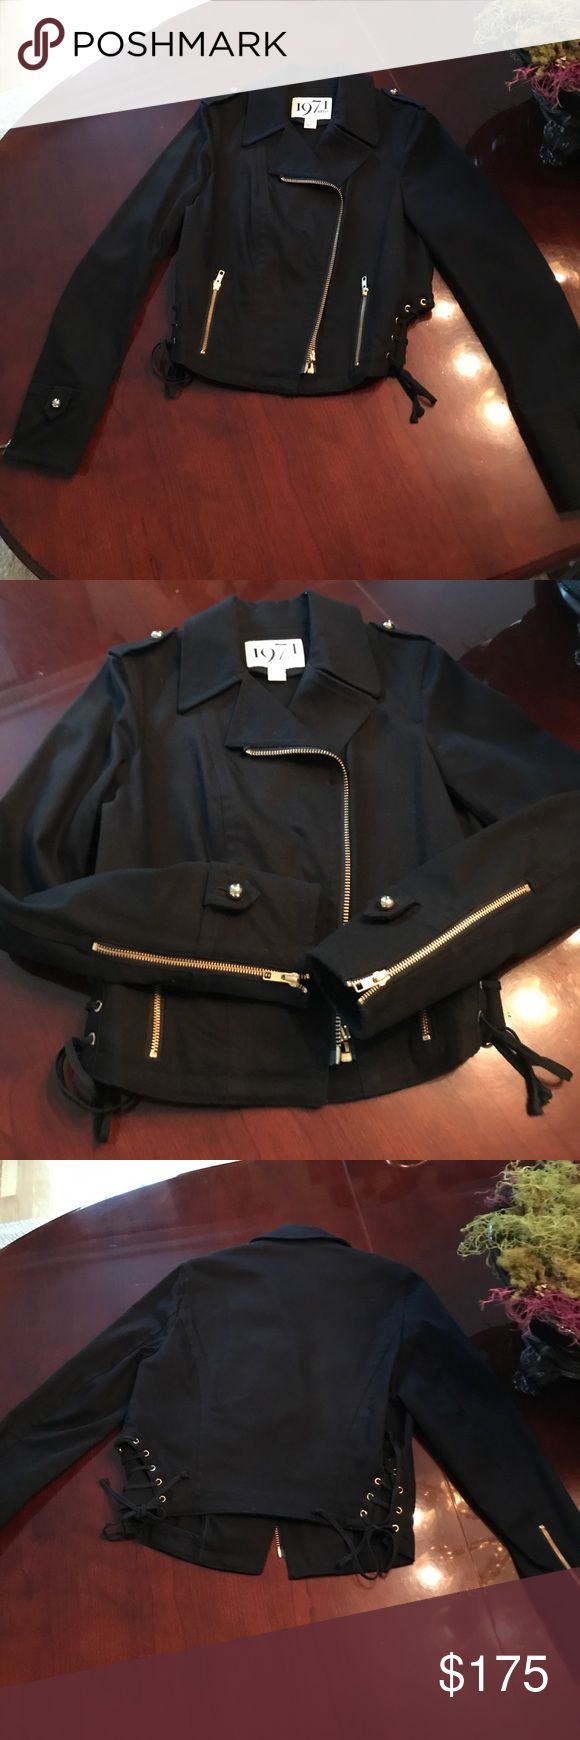 Reiss Canvas Motocross Jacket Reiss Canvas Black Motocross Jacket with Gold detail, ties on side, zippers on sleeves. Worn once, in great shape. Size Large buts fits more like a Medium. Reiss Jackets & Coats